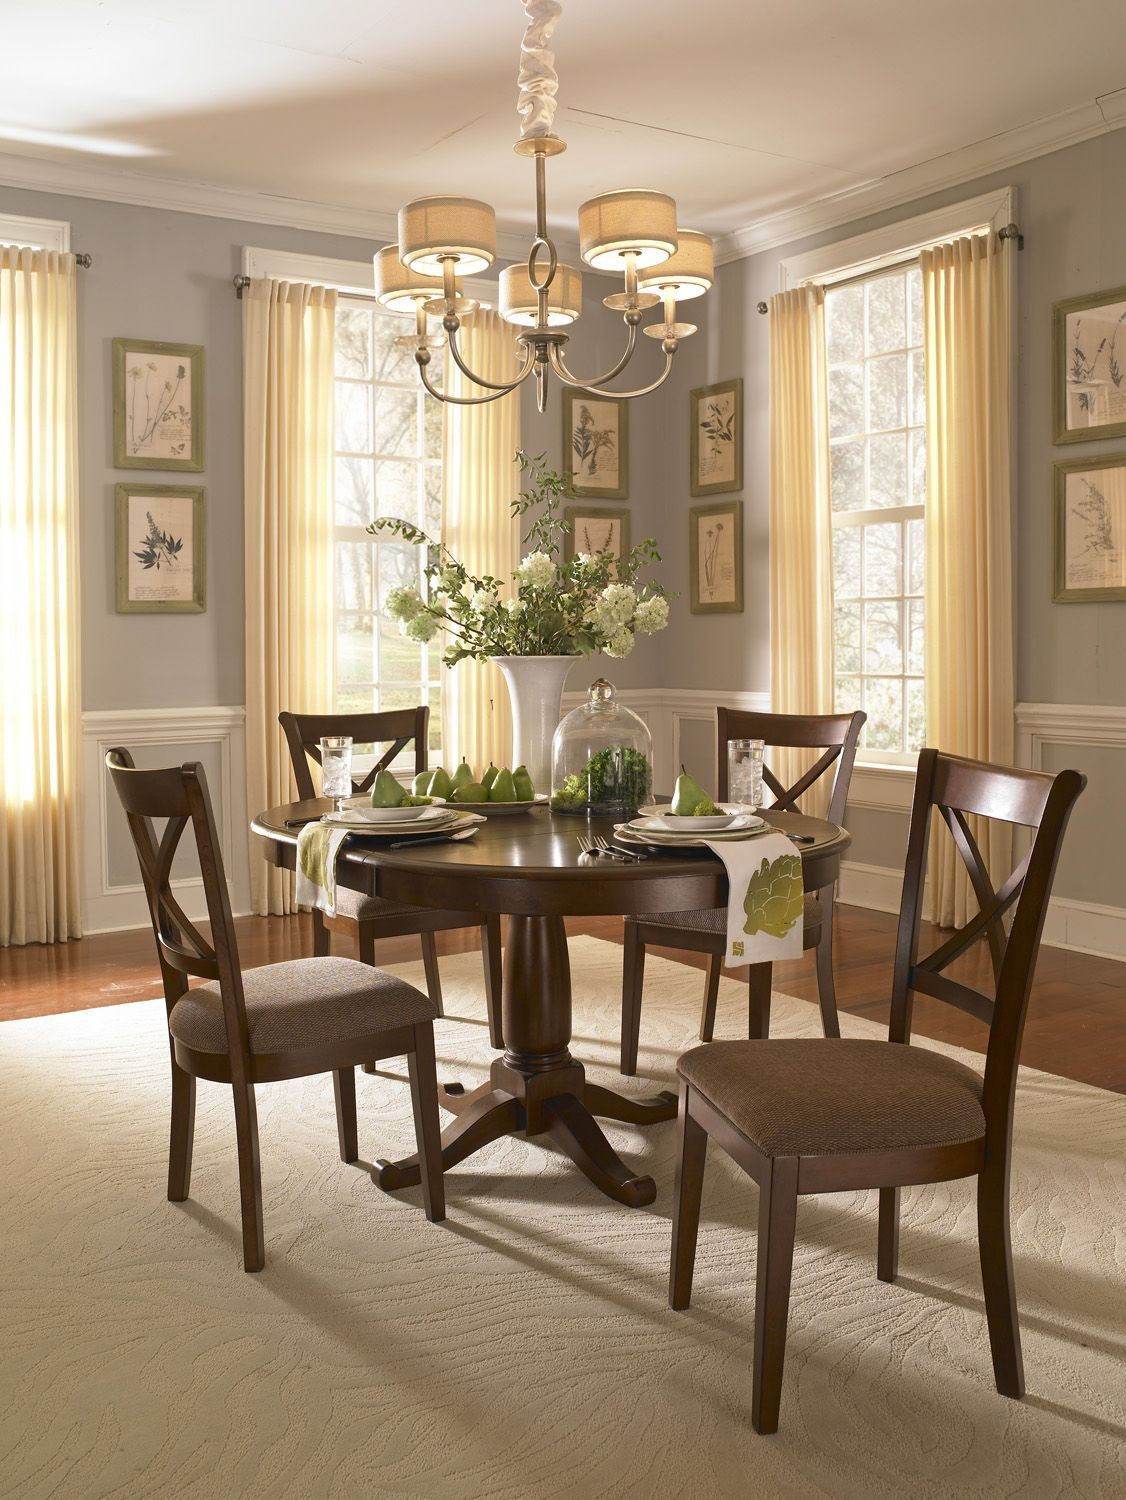 Desoto 60 Burnished Sienna Extendable Oval Dining Room Set DESSI6150